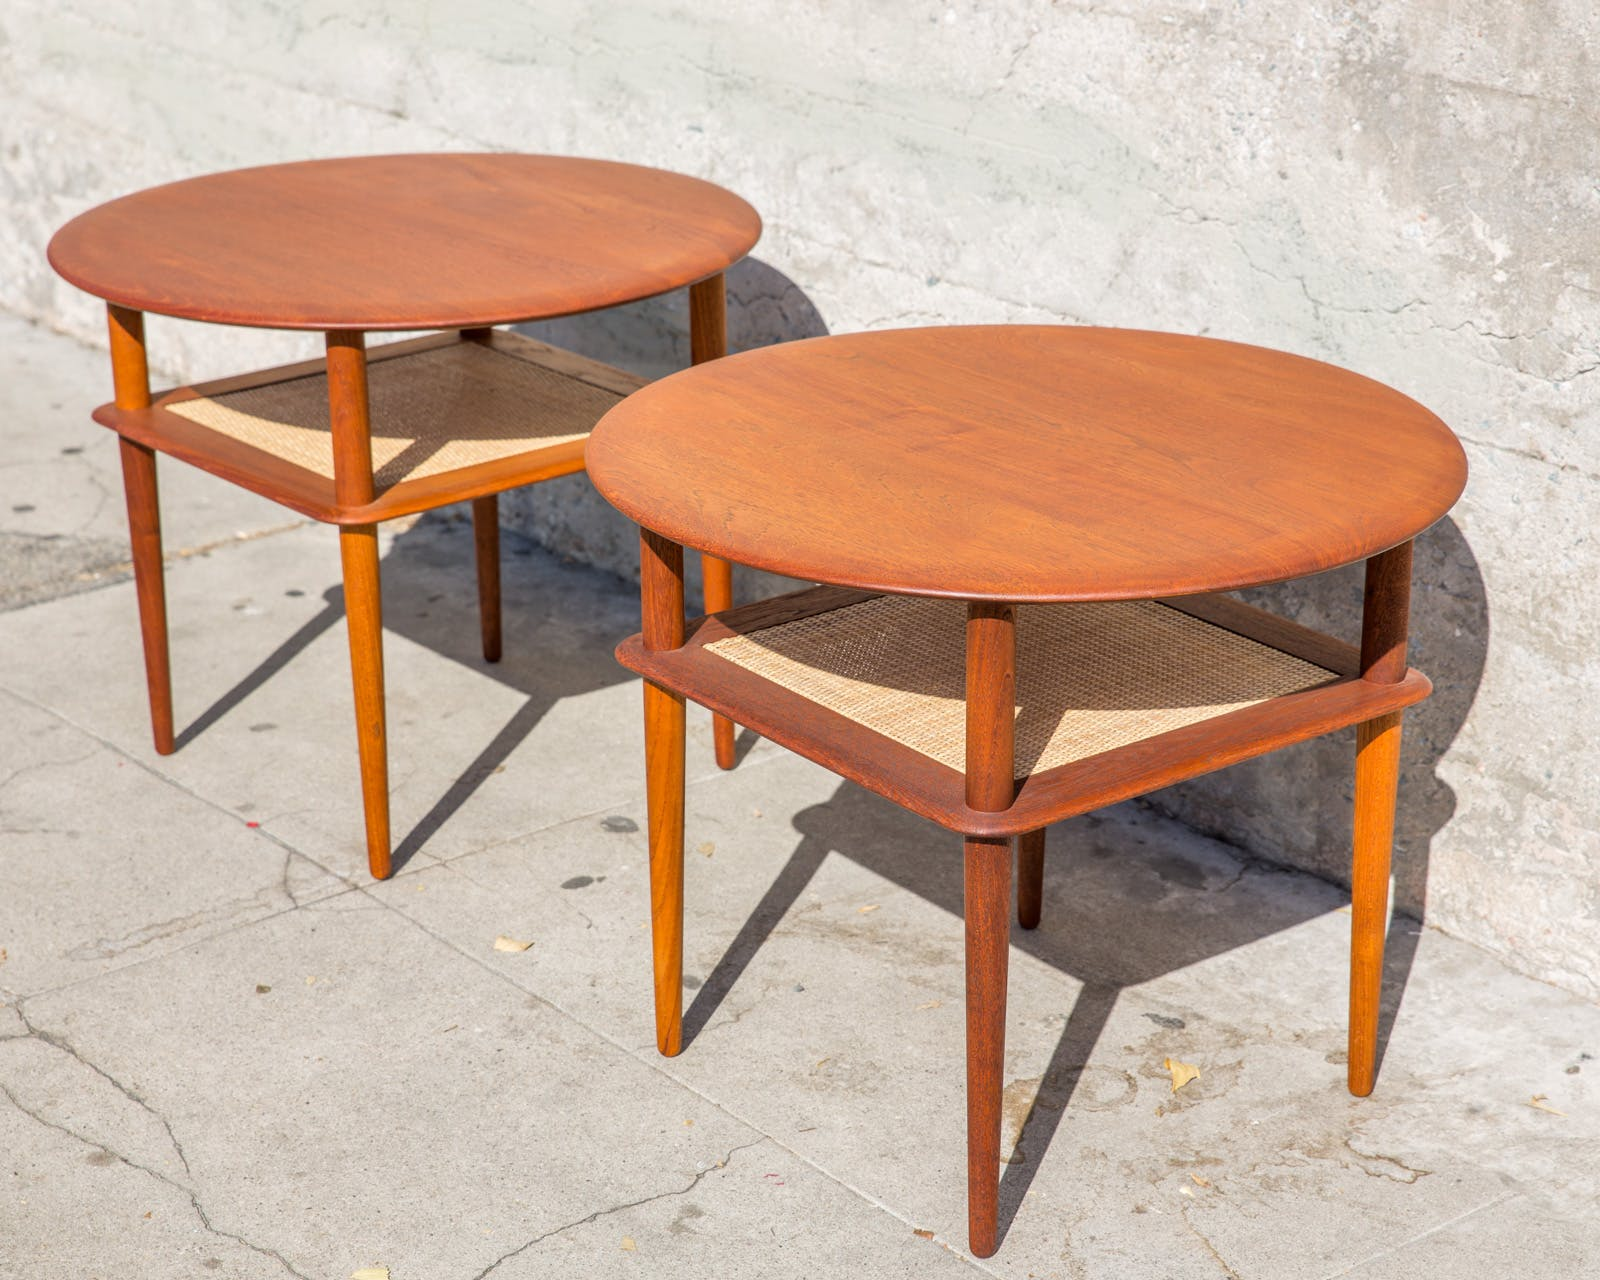 Round Side Tables in Solid Teak by Peter Hvidt for France and Sons (Pair)